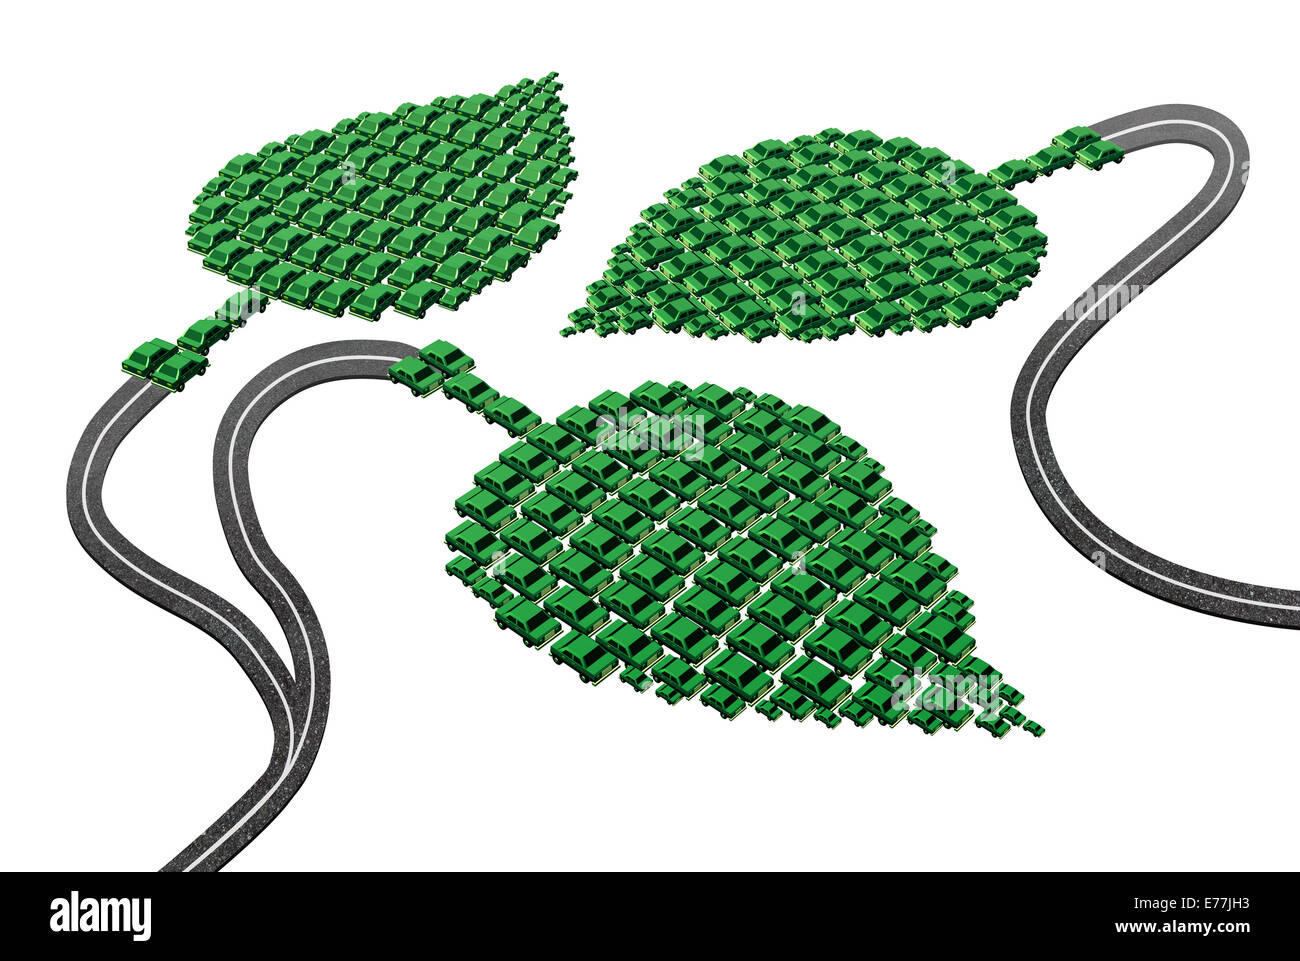 Green transport concept as a group of cars and automobiles in a leaf shape connected with roads as a metaphor for - Stock Image